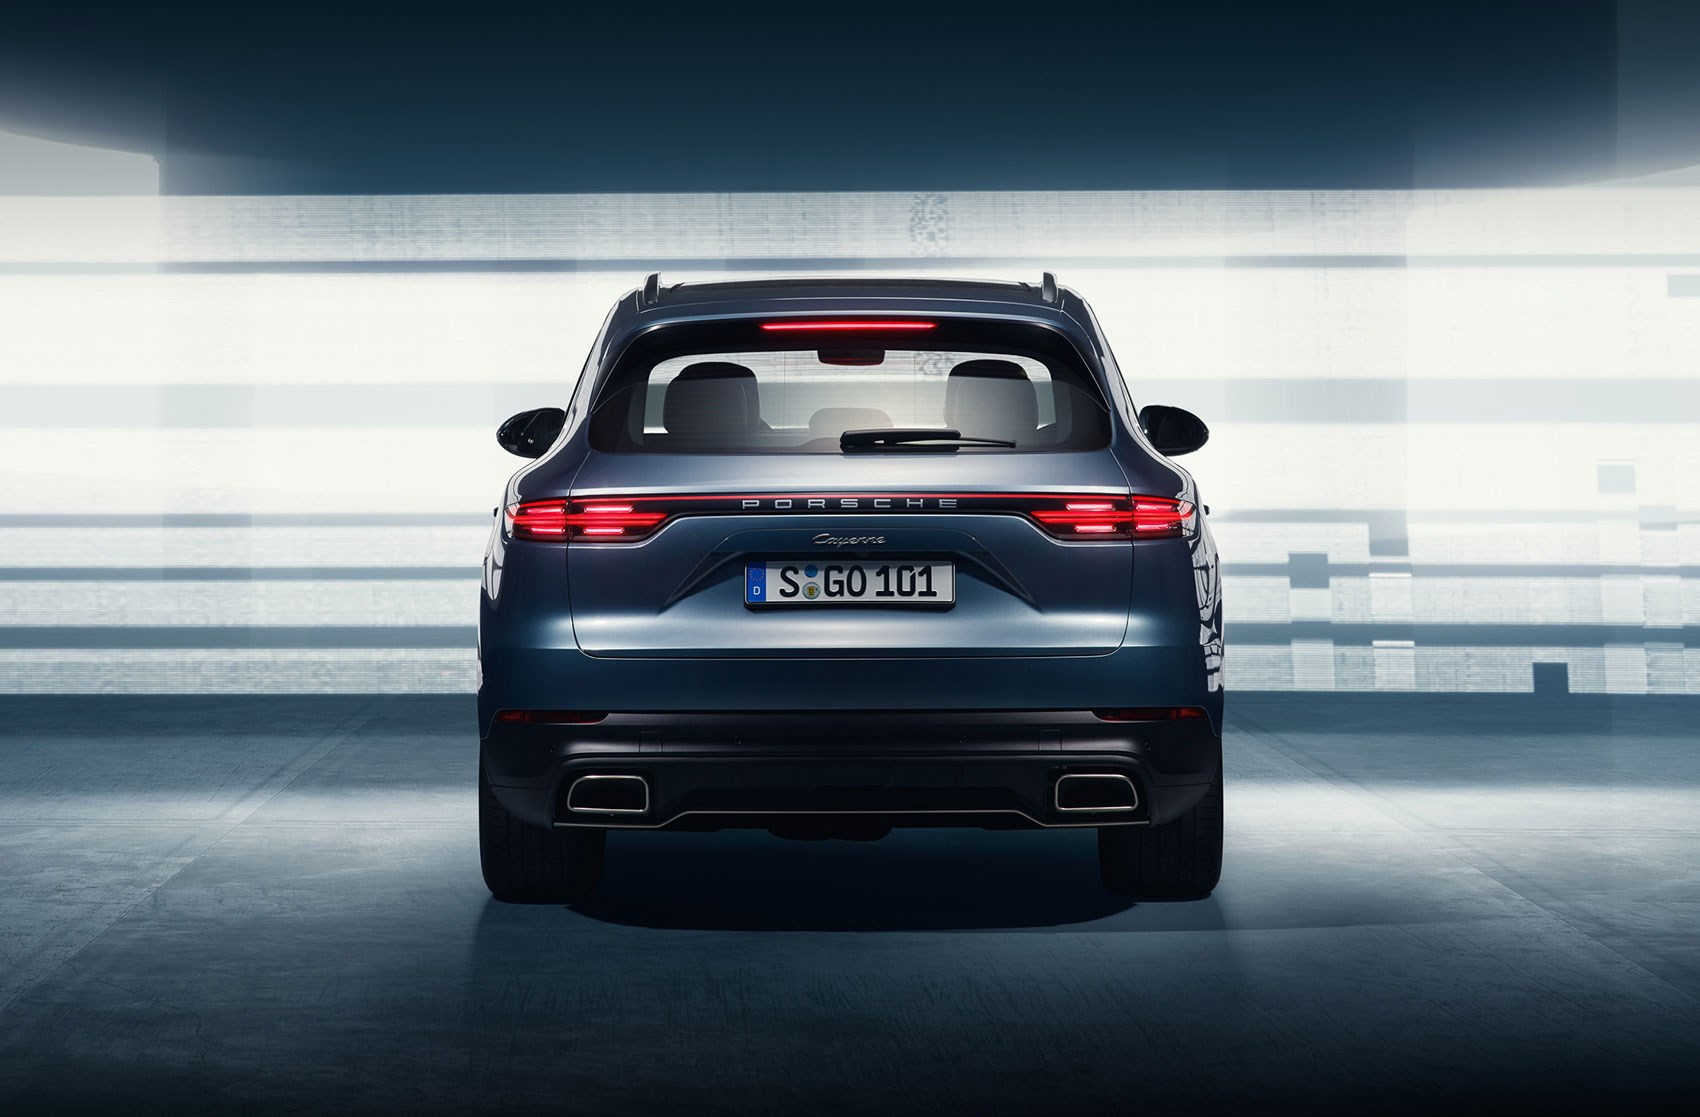 The new Porsche Cayenne should be even better to drive